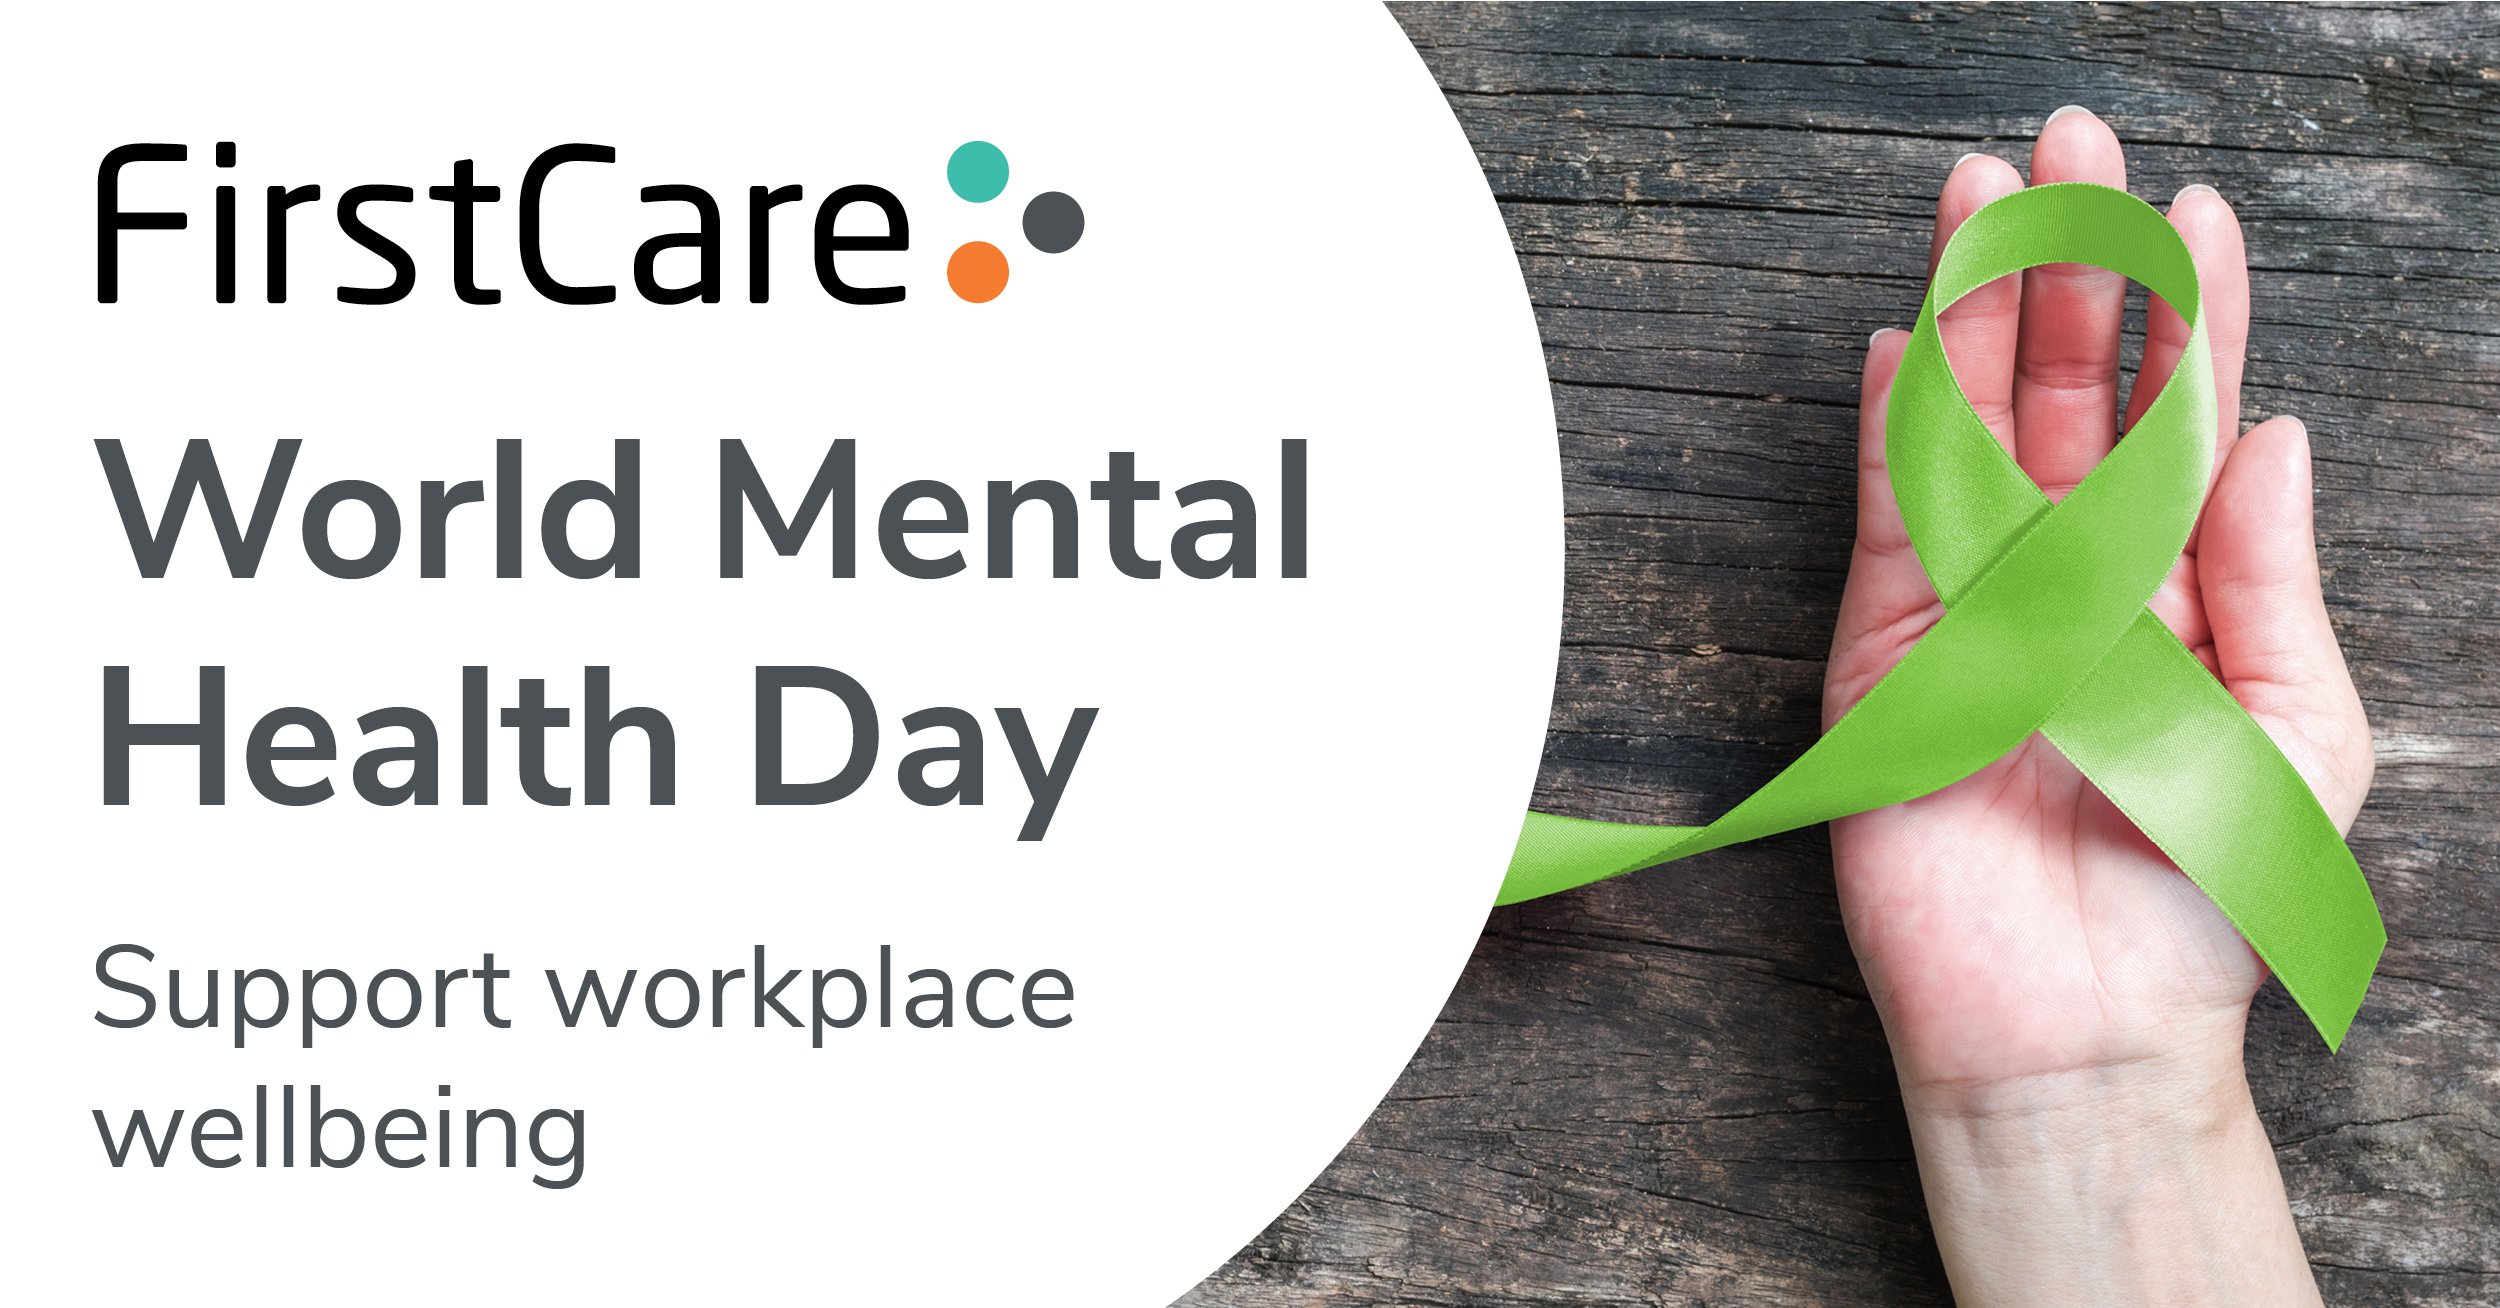 FirstCare World Mental Health Day